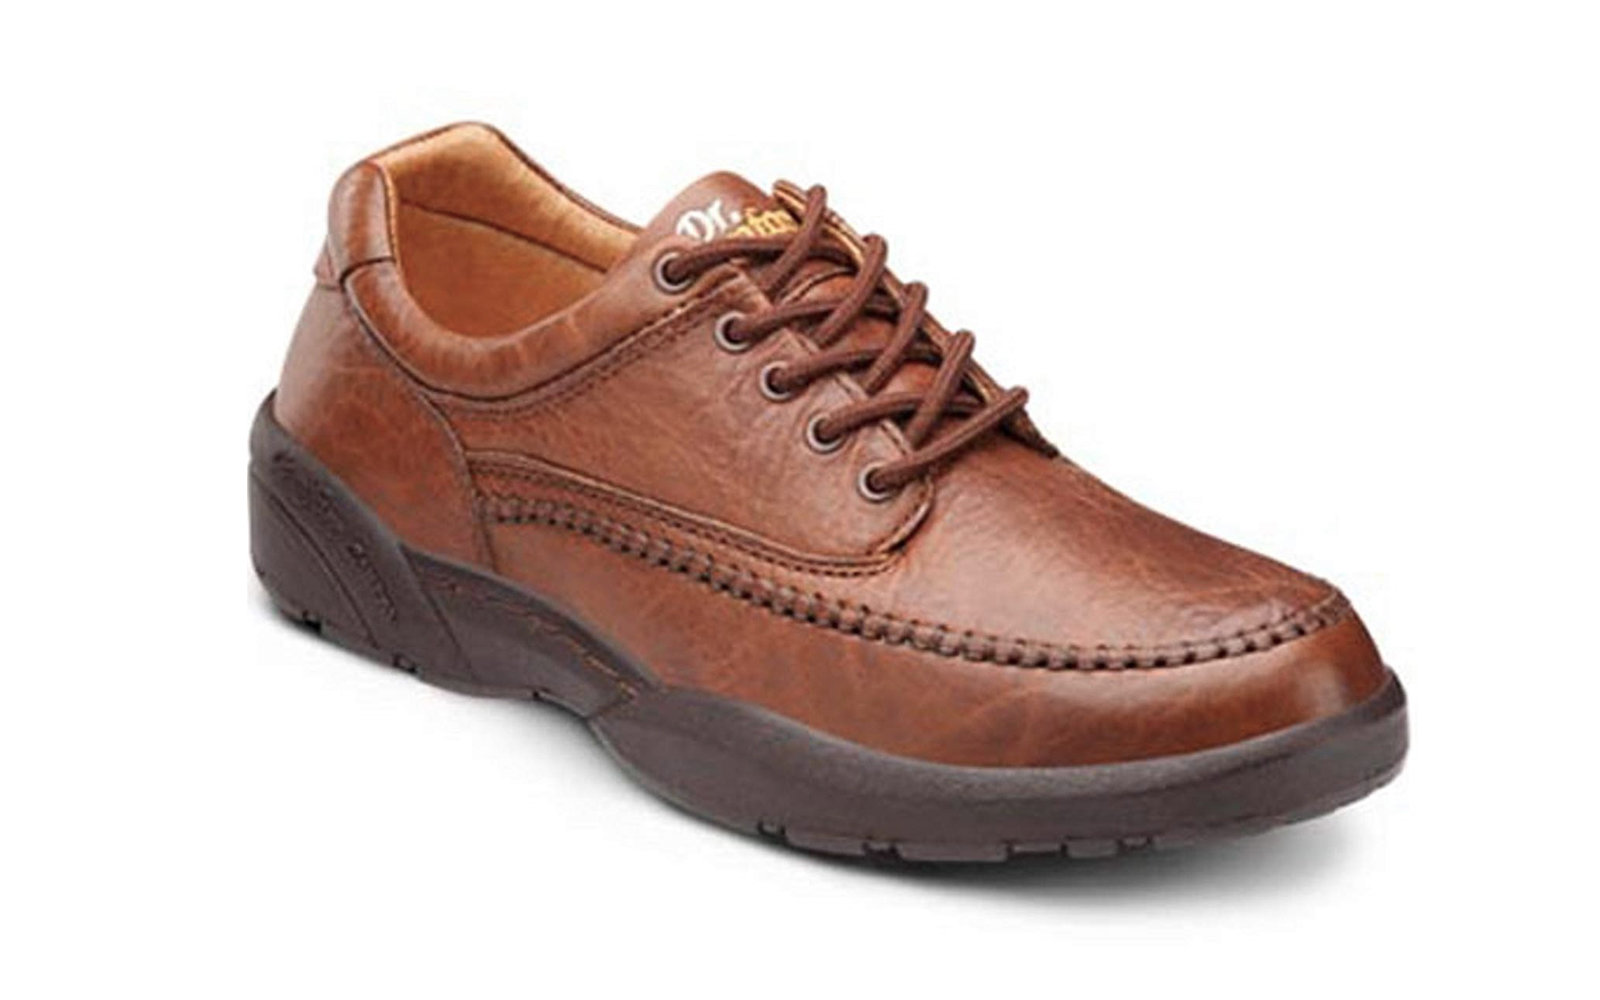 la meilleure attitude fc2ca d776a The Best Comfy Walking Shoes for Men, According to ...